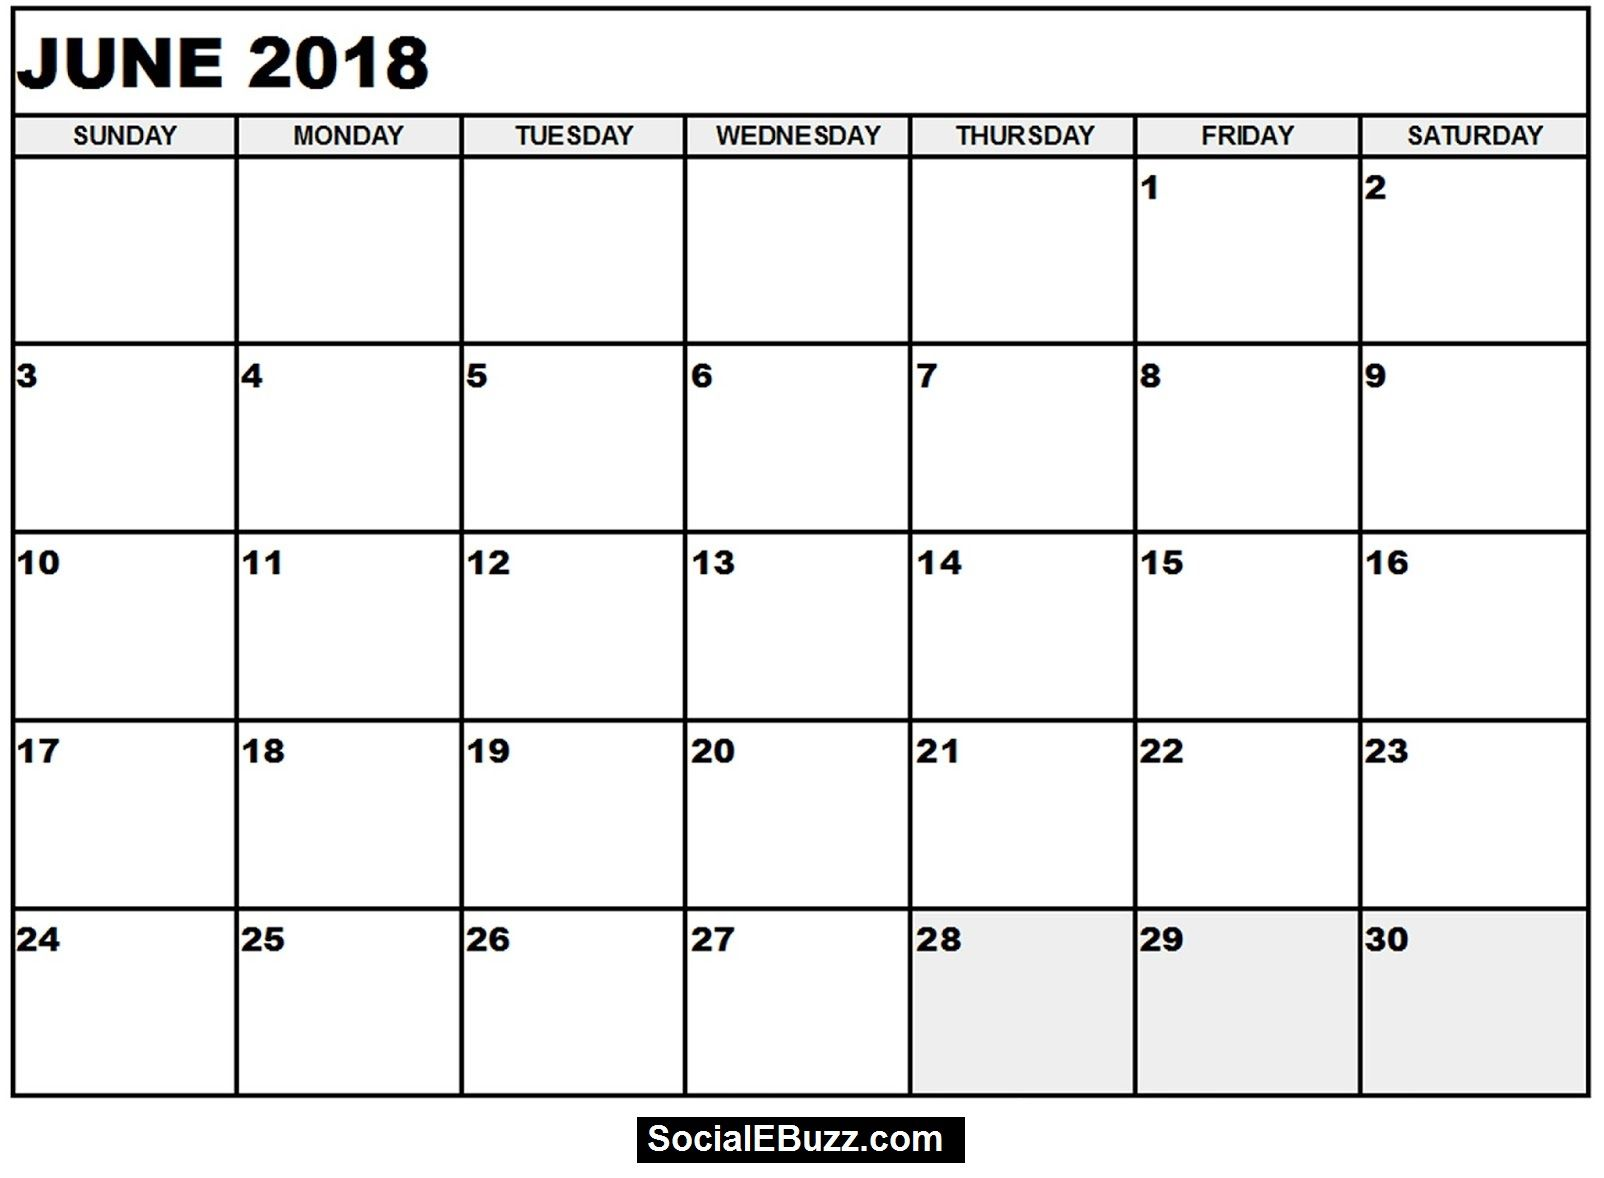 June 2018 Calendar Printable Template June Calendar 2018 June